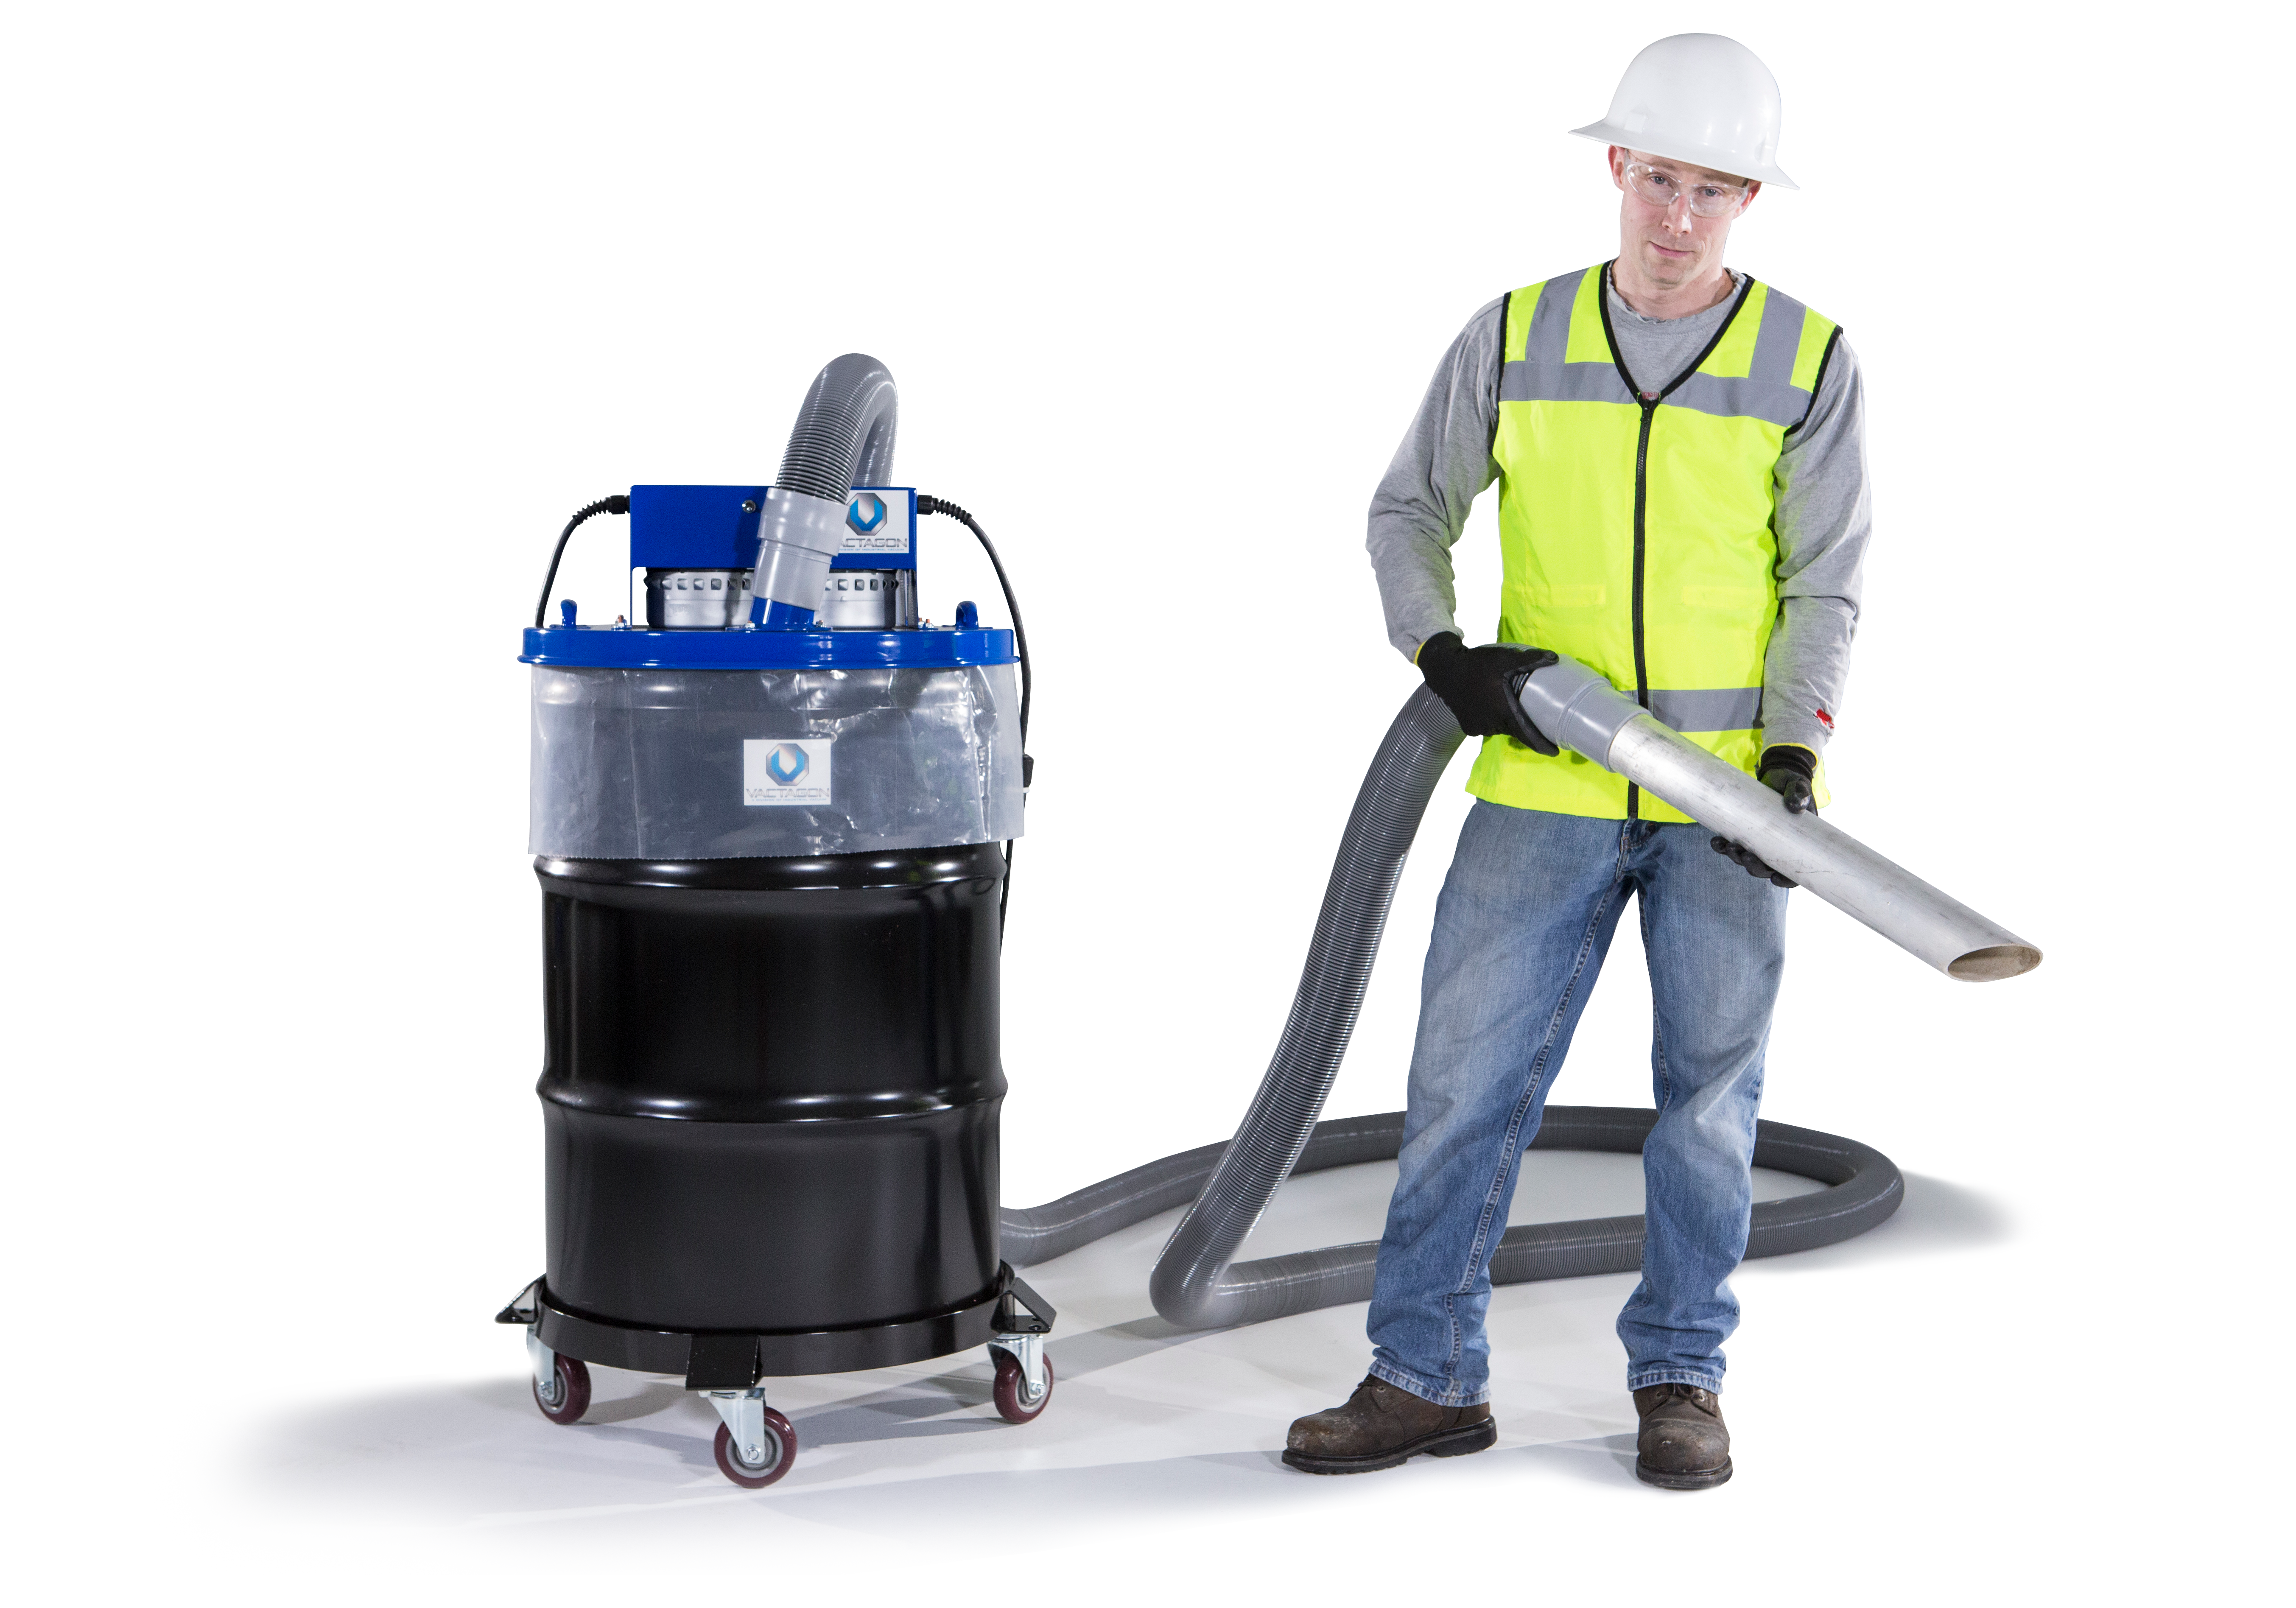 Man wearing hard hat and holding vacuum with hose